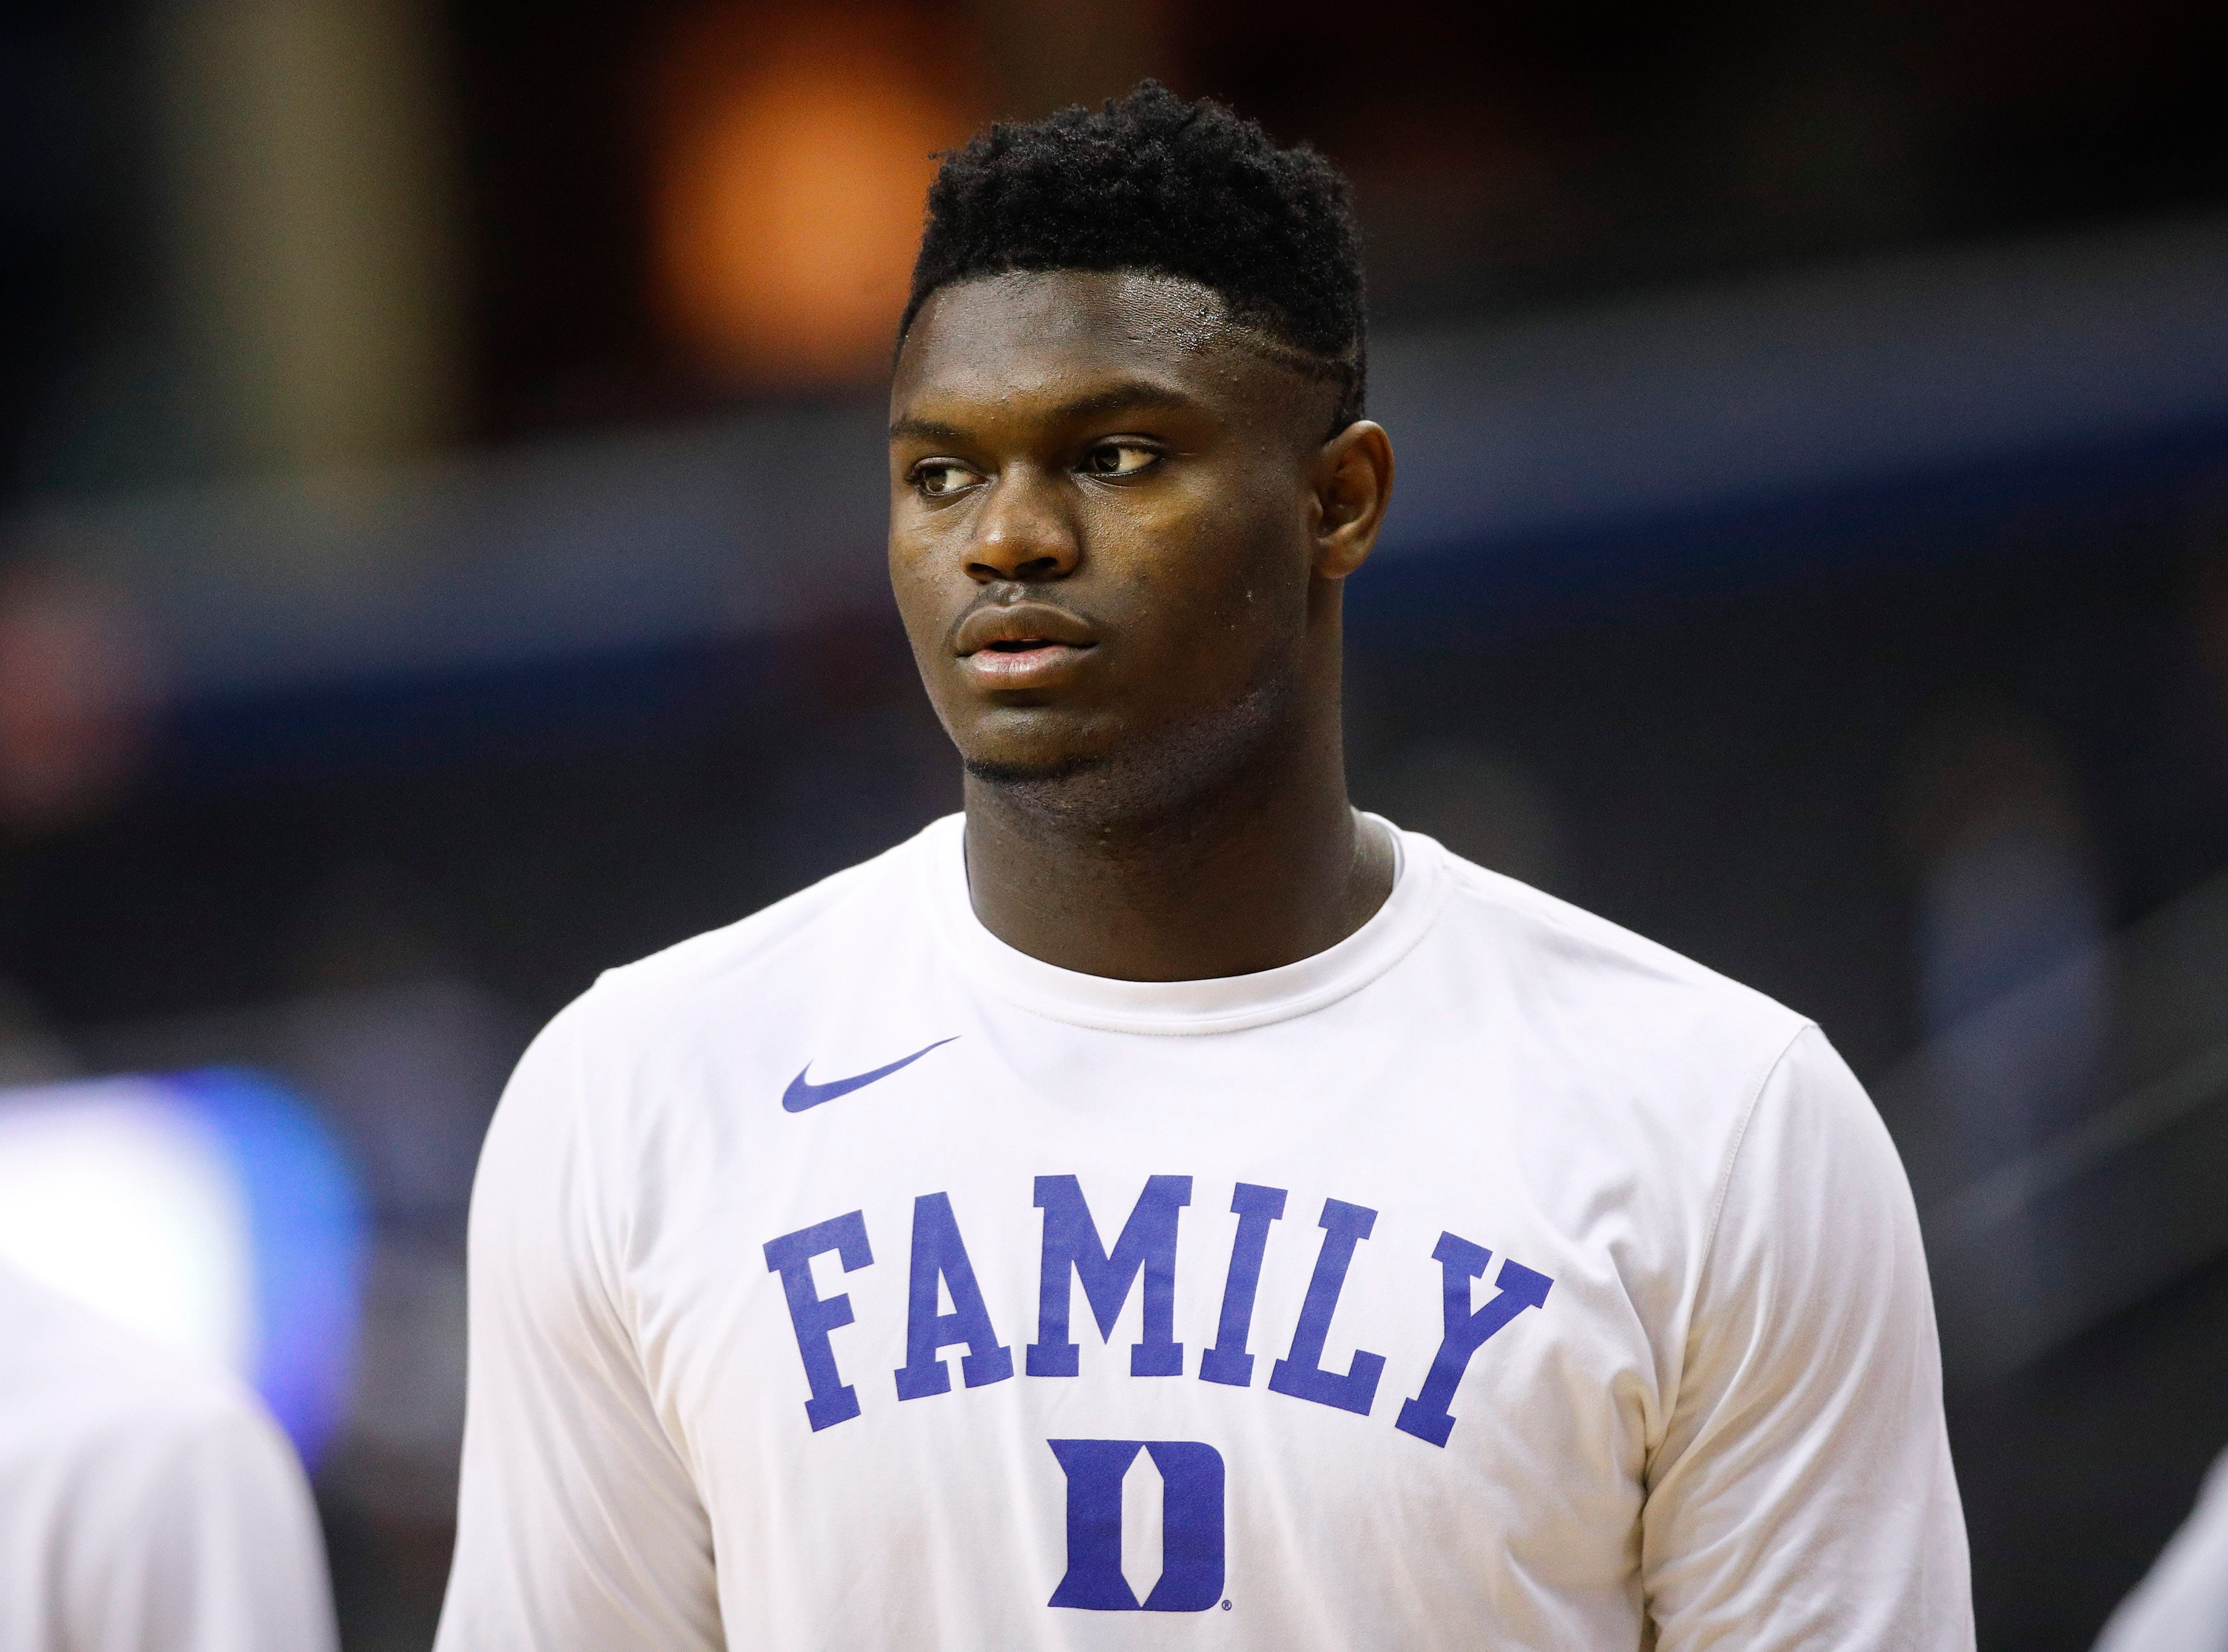 Duke forward Zion Williamson on the court warming up before the start of a NCAA men's East Regional final college basketball game against Michigan State in Washington, Sunday, March 31, 2019.